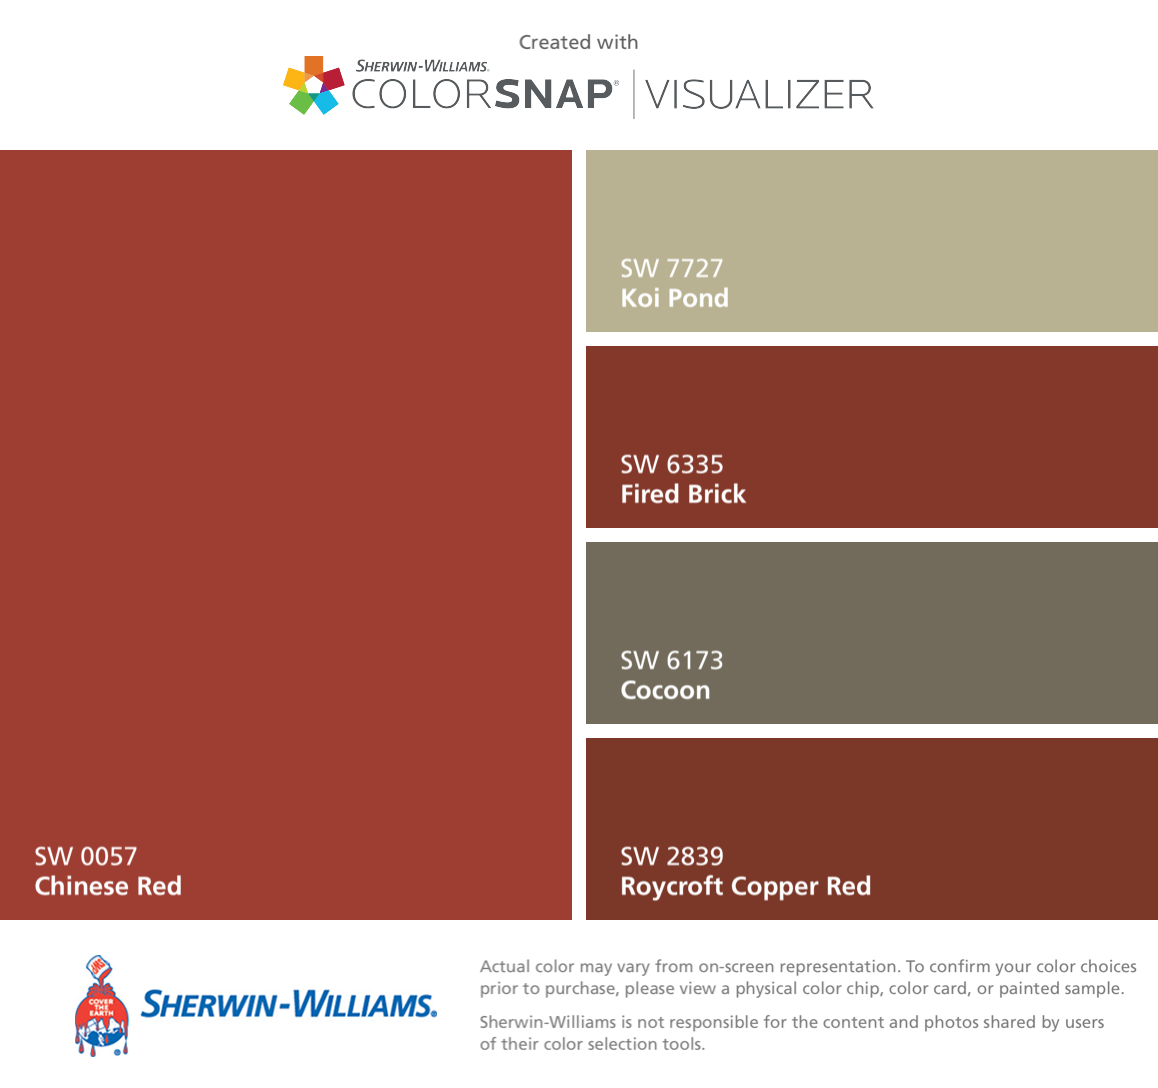 I Found These Colors With Colorsnap Visualizer For Iphone By Sherwin Williams Chinese Red Sw 0057 Koi Pond 7727 Fired Brick 6335